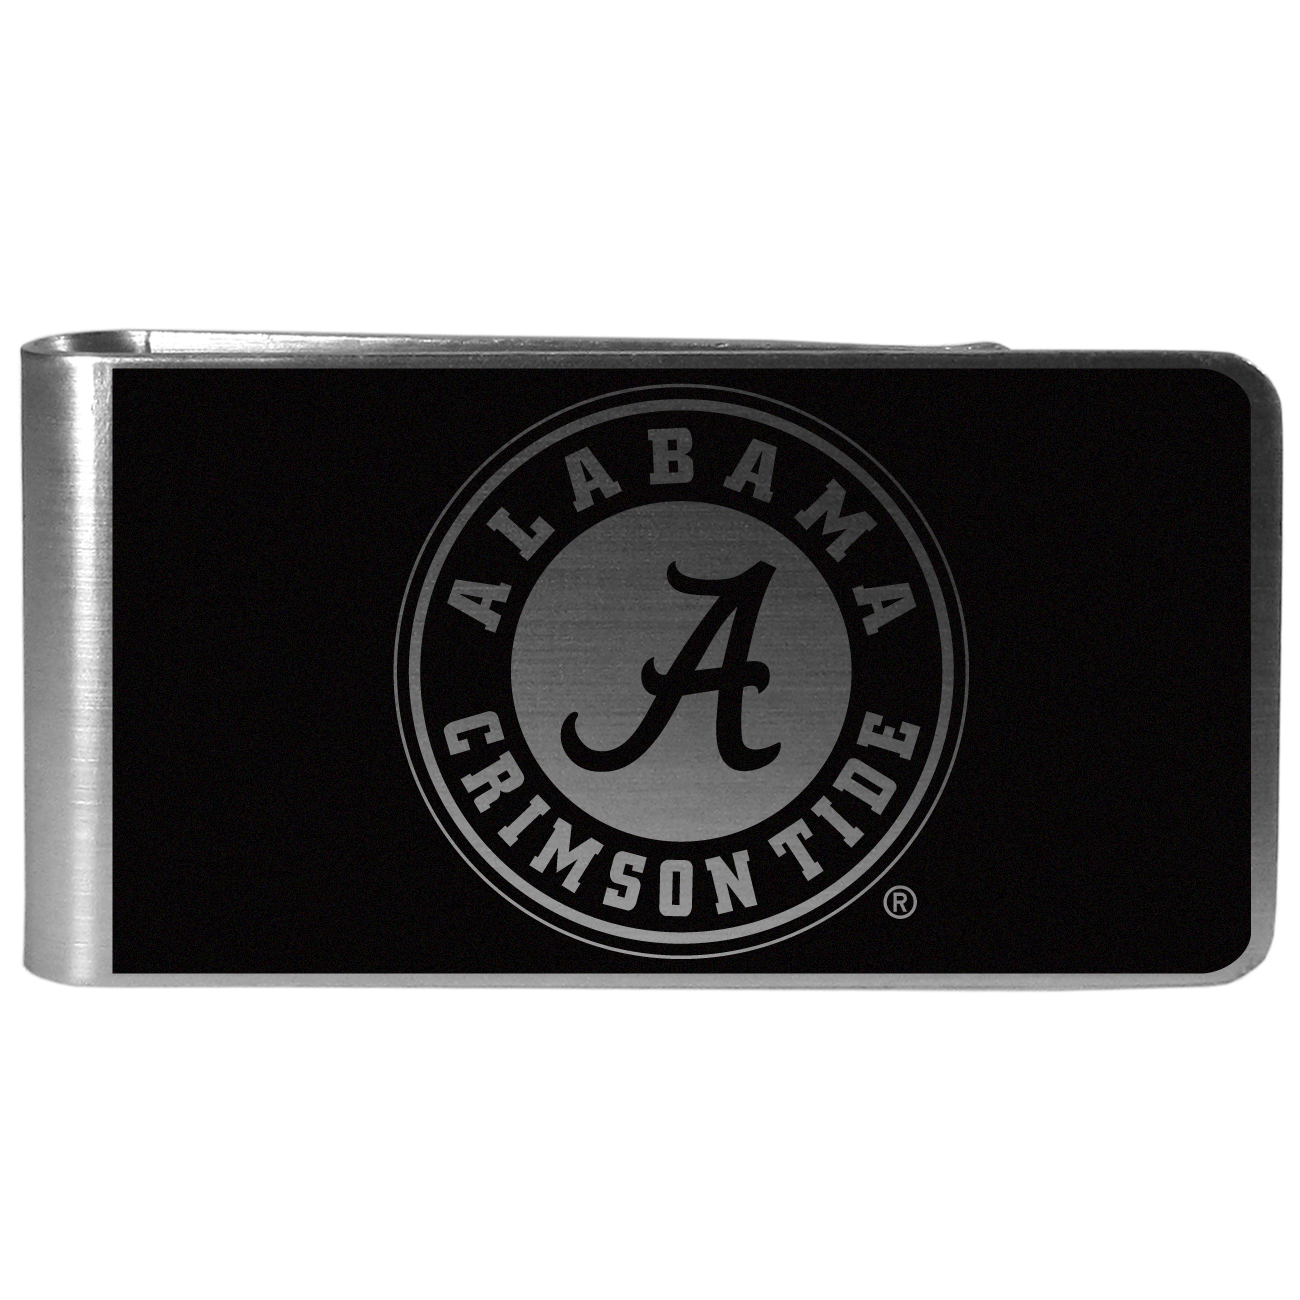 Alabama Crimson Tide Black and Steel Money Clip - Our monochromatic steel money clips have a classic style and superior quality. The strong, steel clip has a black overlay of the Alabama Crimson Tide logo over the brushed metal finish creating a stylish men's fashion accessory that would make any fan proud.